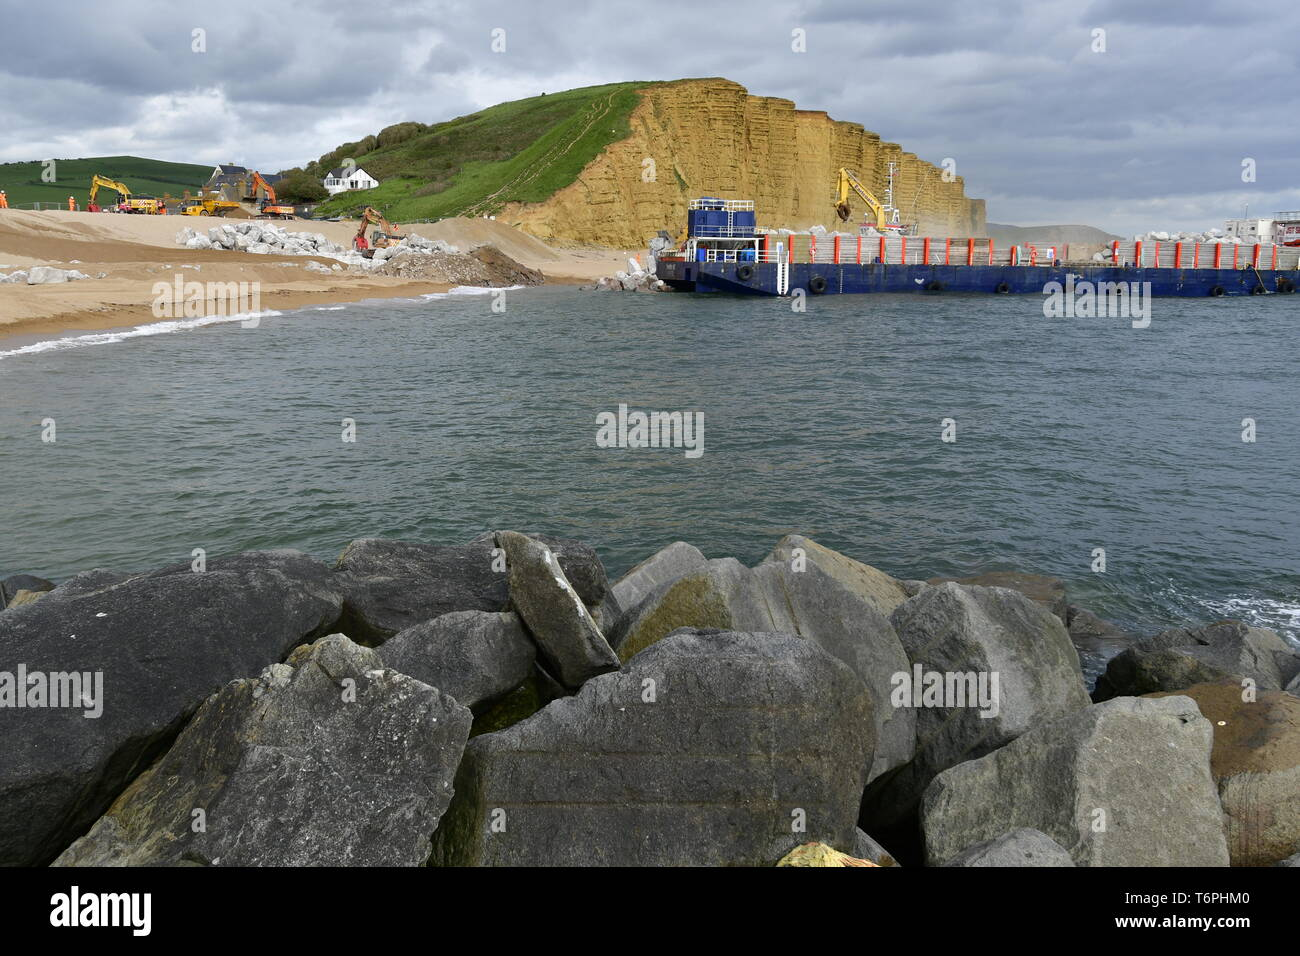 West Bay, Dorset, UK. 2nd May 2019. A large coastal defence is underway at West Bay in Dorset. Large blocks are delivered by boats and off loaded into the sea front by bucket loads. The stones come from Scotland where its picked up by large mechanical clasps and driven up the pebble beach. The sea front is where the TV show Broadchurch was filmed.Picture Credit: Robert Timoney/Alamy Live Newss - Stock Image